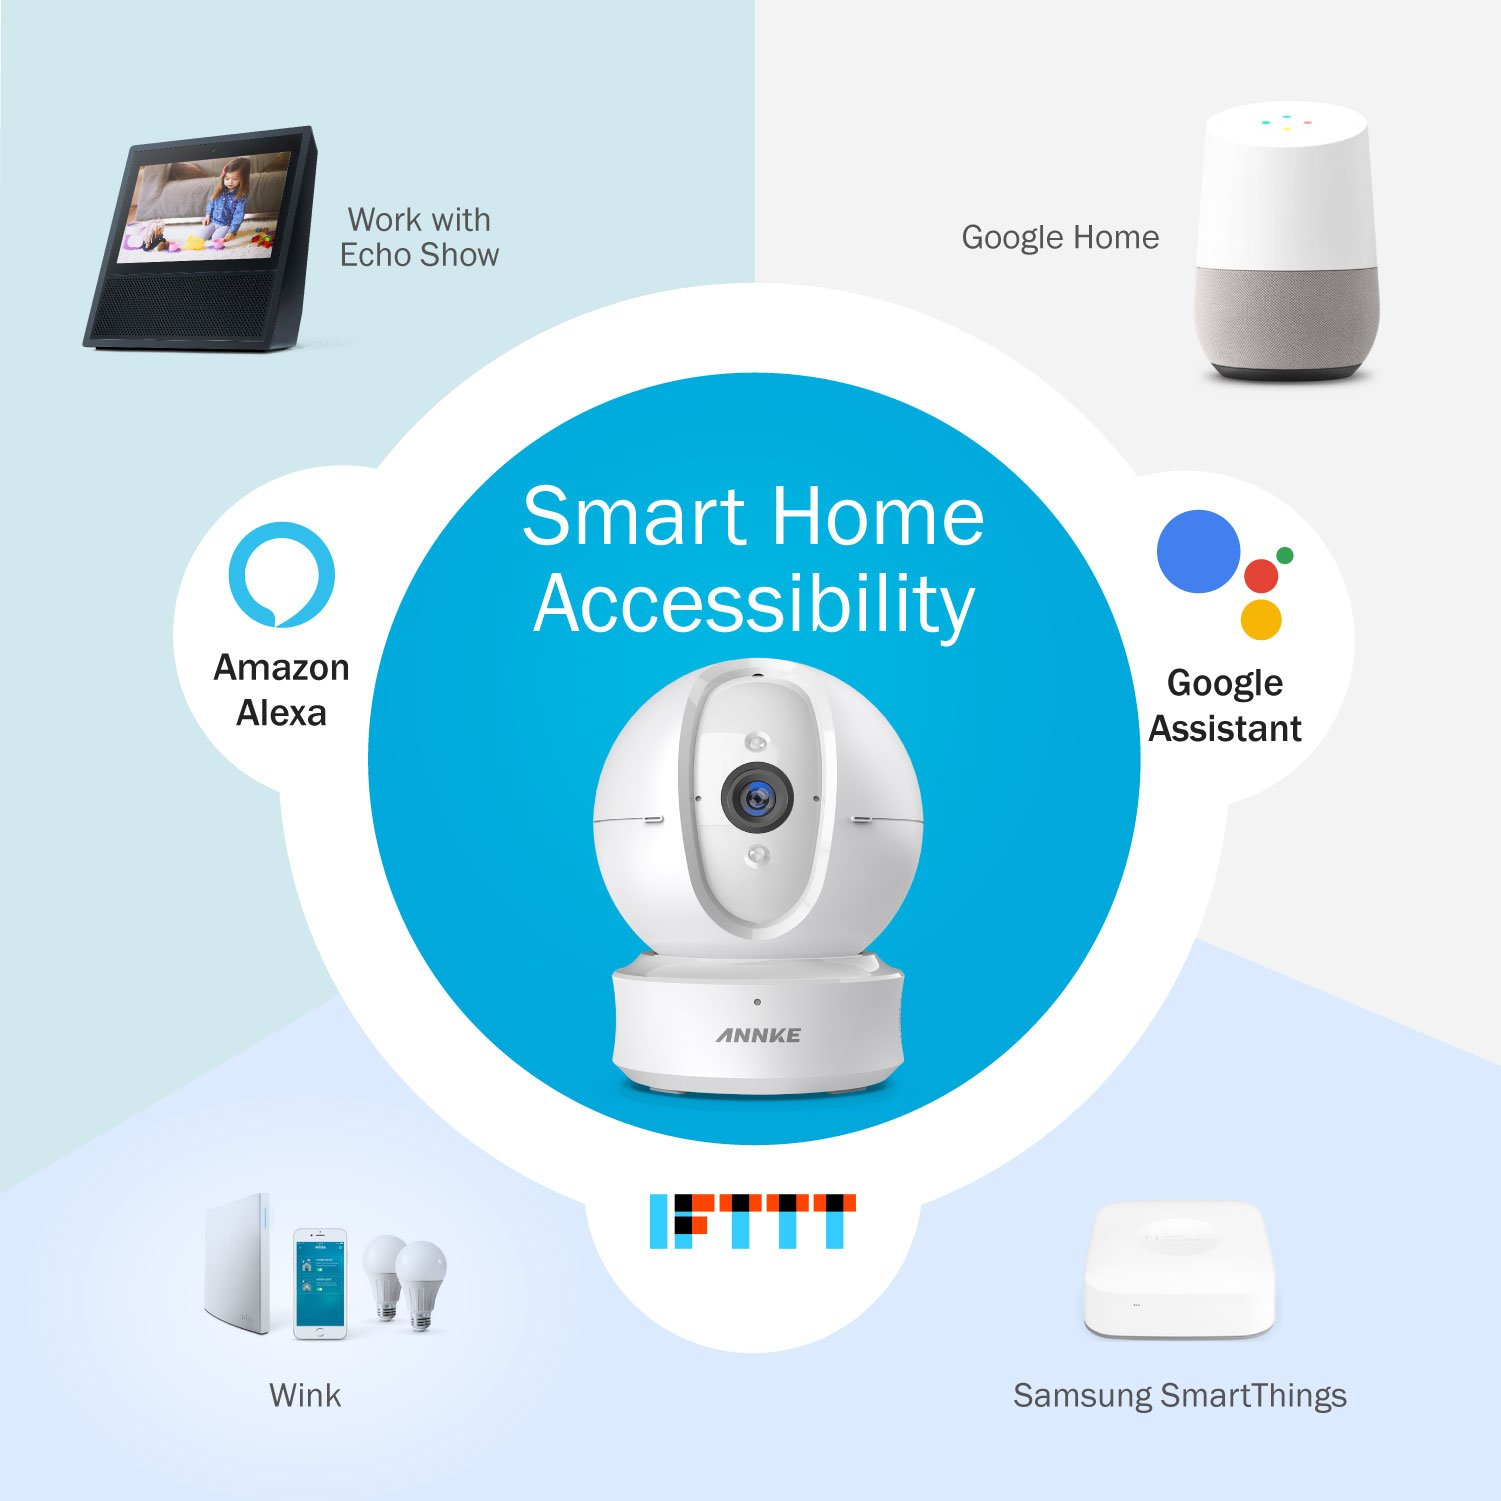 ANNKE Wifi IP Camera, Nova Orion 1080P HD Pan/Tilt Home Security Camera,  Work with Alexa Echo Show/Fire TV, Google Assistant and IFTTT, Cloud  Service